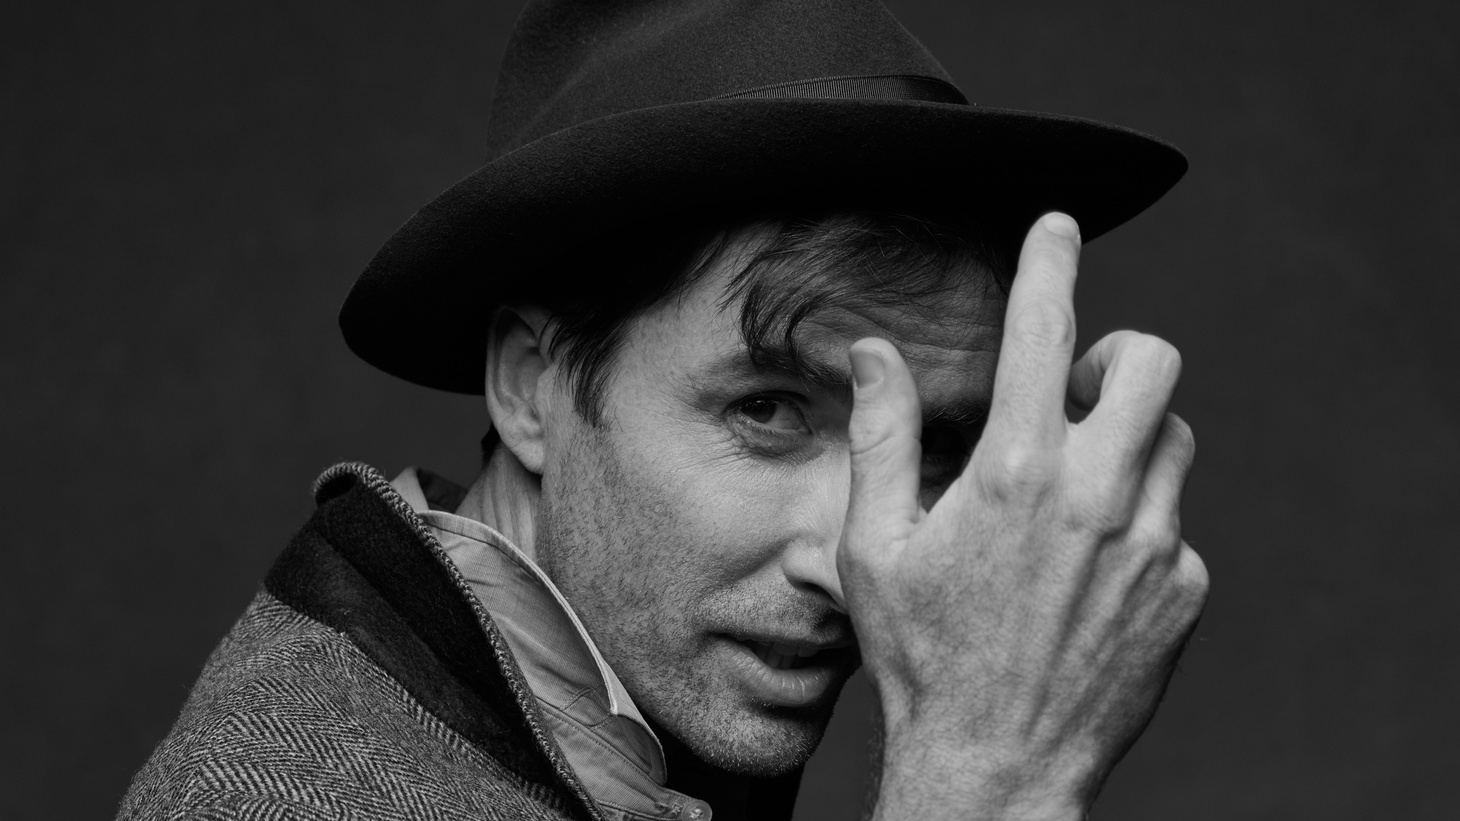 A featured Ted Talk presenter, who has also headlined at Walt Disney Concert Hall, Andrew Bird is no stranger to KCRW fans. Bird takes a shot at Greek mythology on Sisyphus, as he turns the story upside down, rejoicing over his endless task.